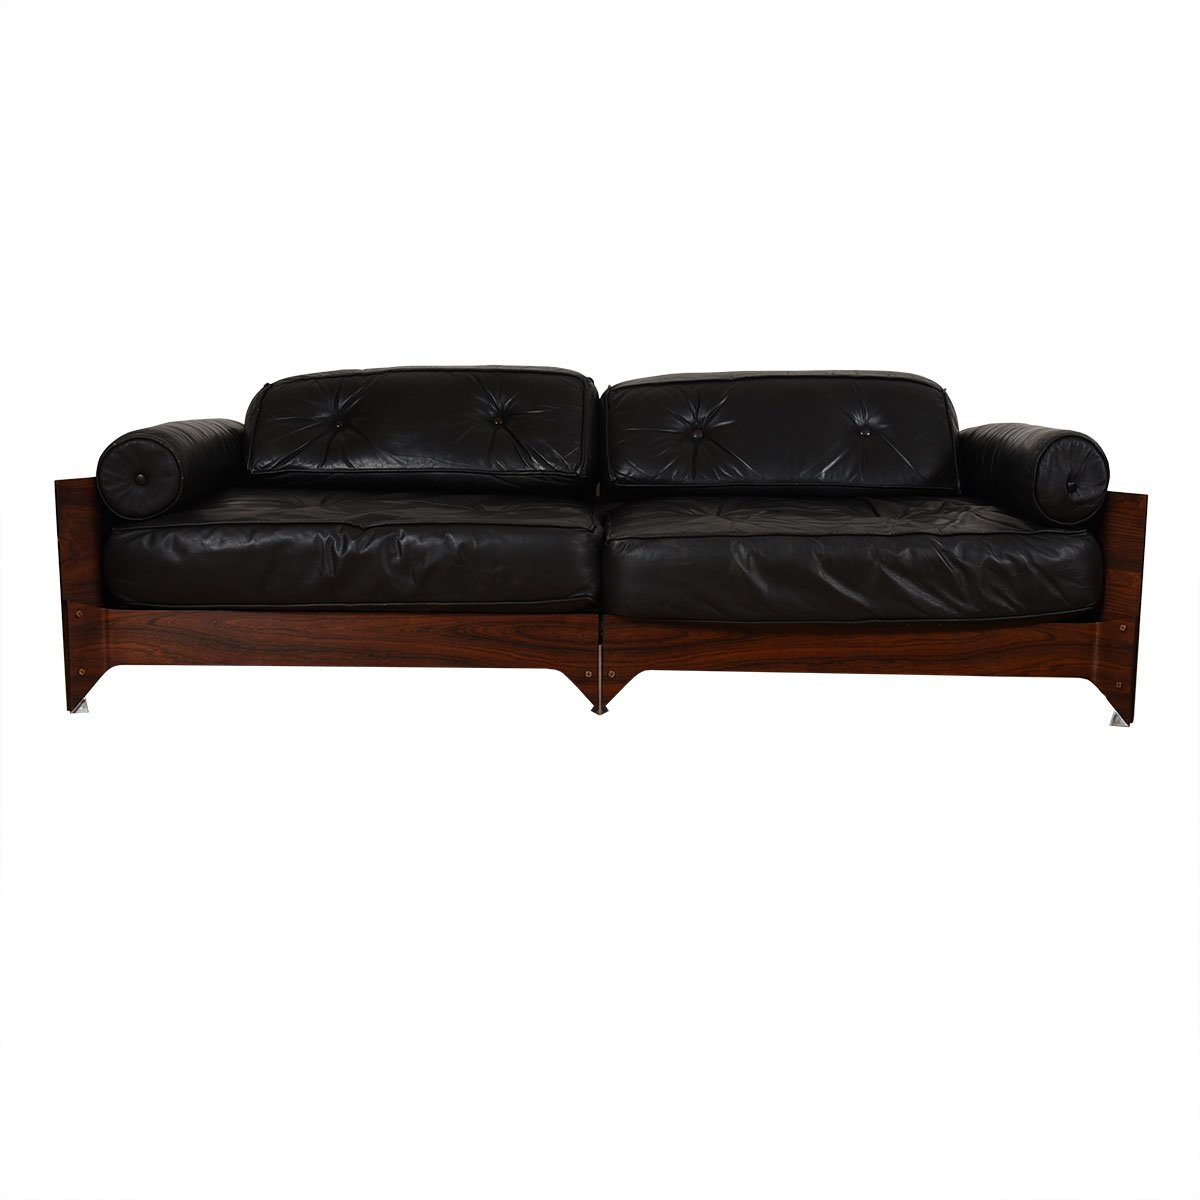 The 'BRASILINIA' Sofa, a rare piece by Jorge Zalszupin